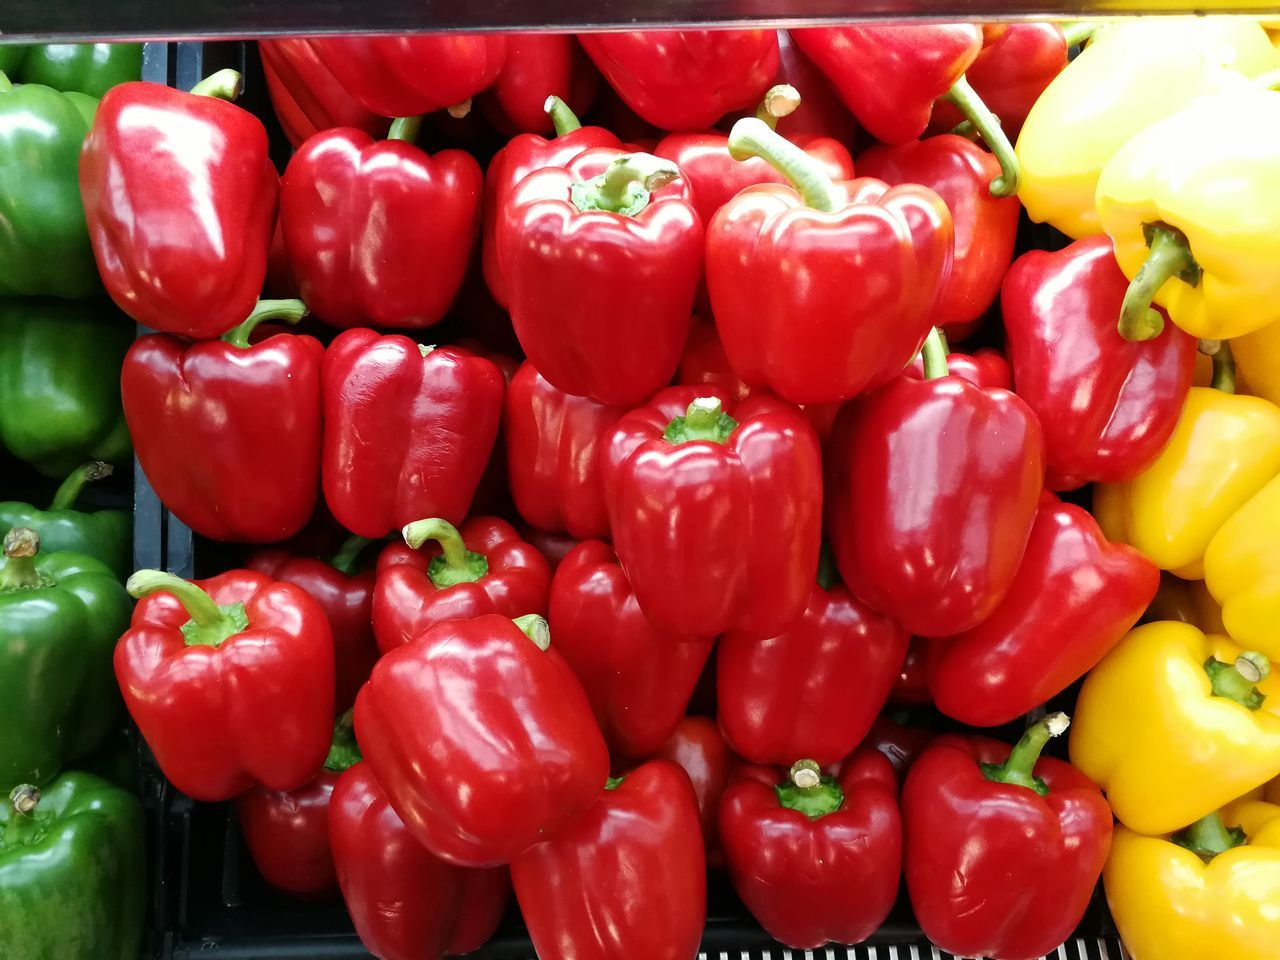 Abundance Backgrounds Bell Pepper Bell Peppers Capsicum Capsicum Pepper Close-up Day Food Food And Drink Freshness Full Frame Healthy Eating Indoors  Large Group Of Objects Market No People Pepper Peppers Red Red Bell Pepper Vegetable